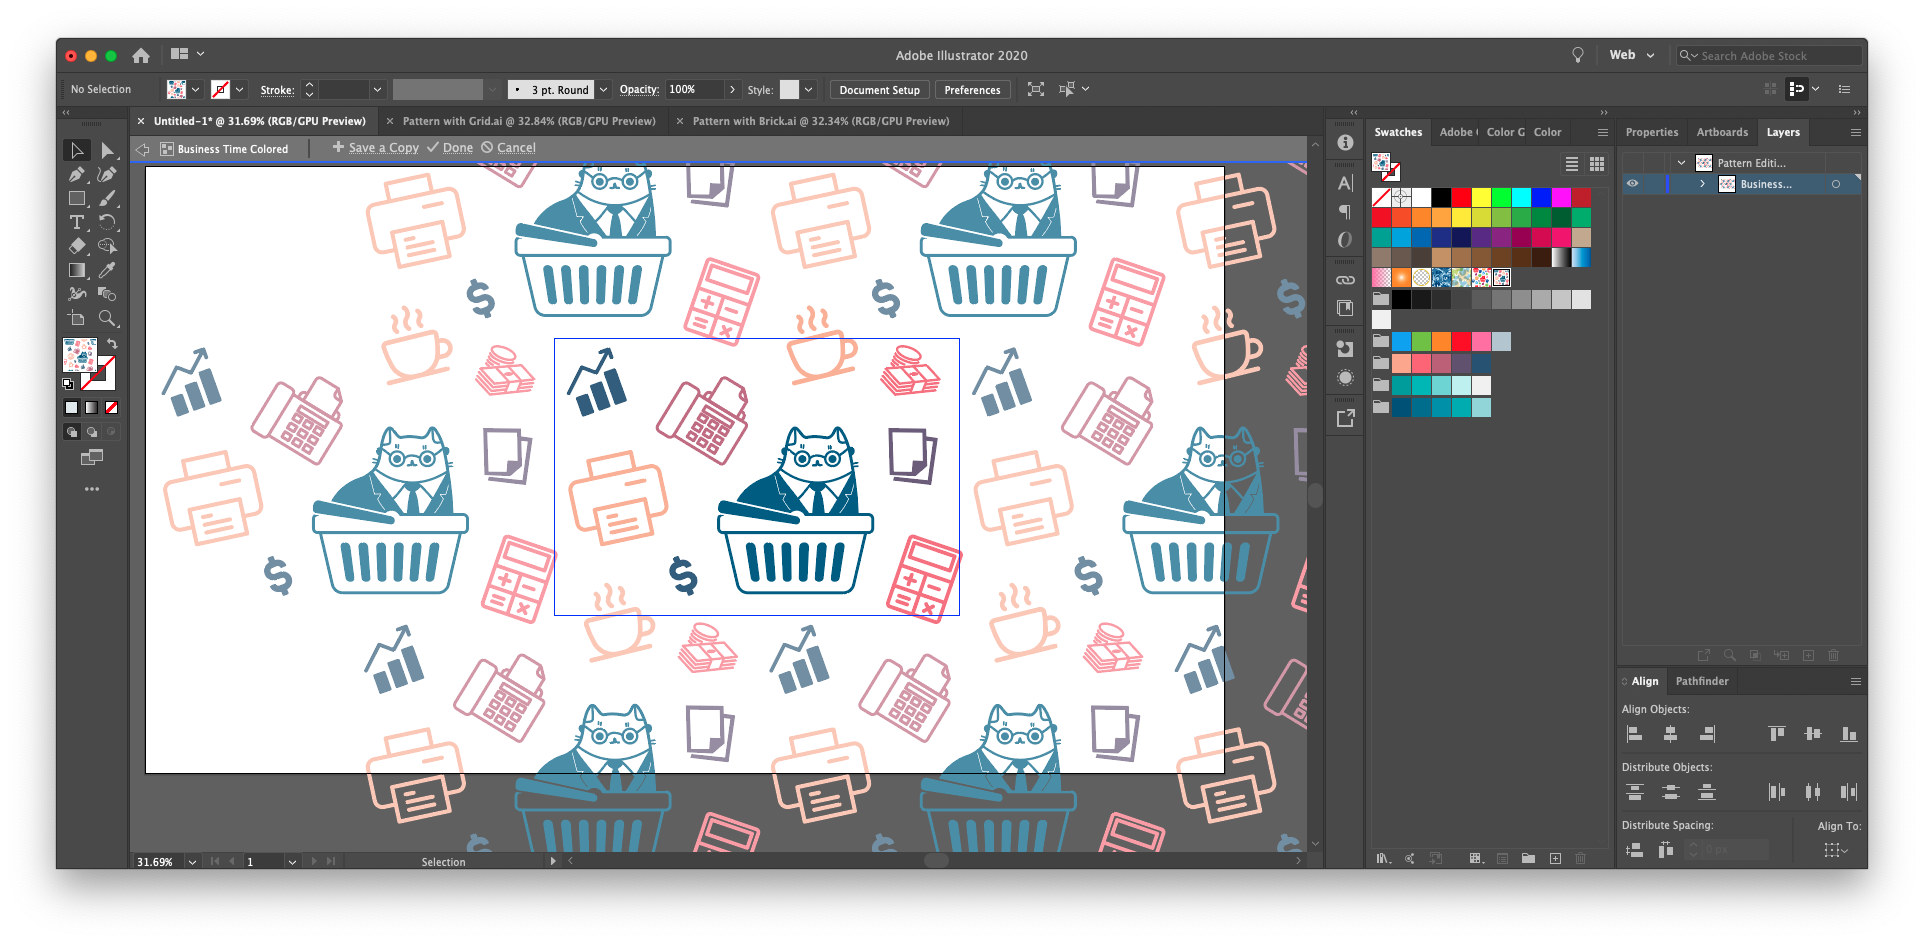 When you use illustrator create pattern, you can always go back to edit and recolor the pattern's contents. Save a copy of your repeating pattern to try out different variations without overwriting.